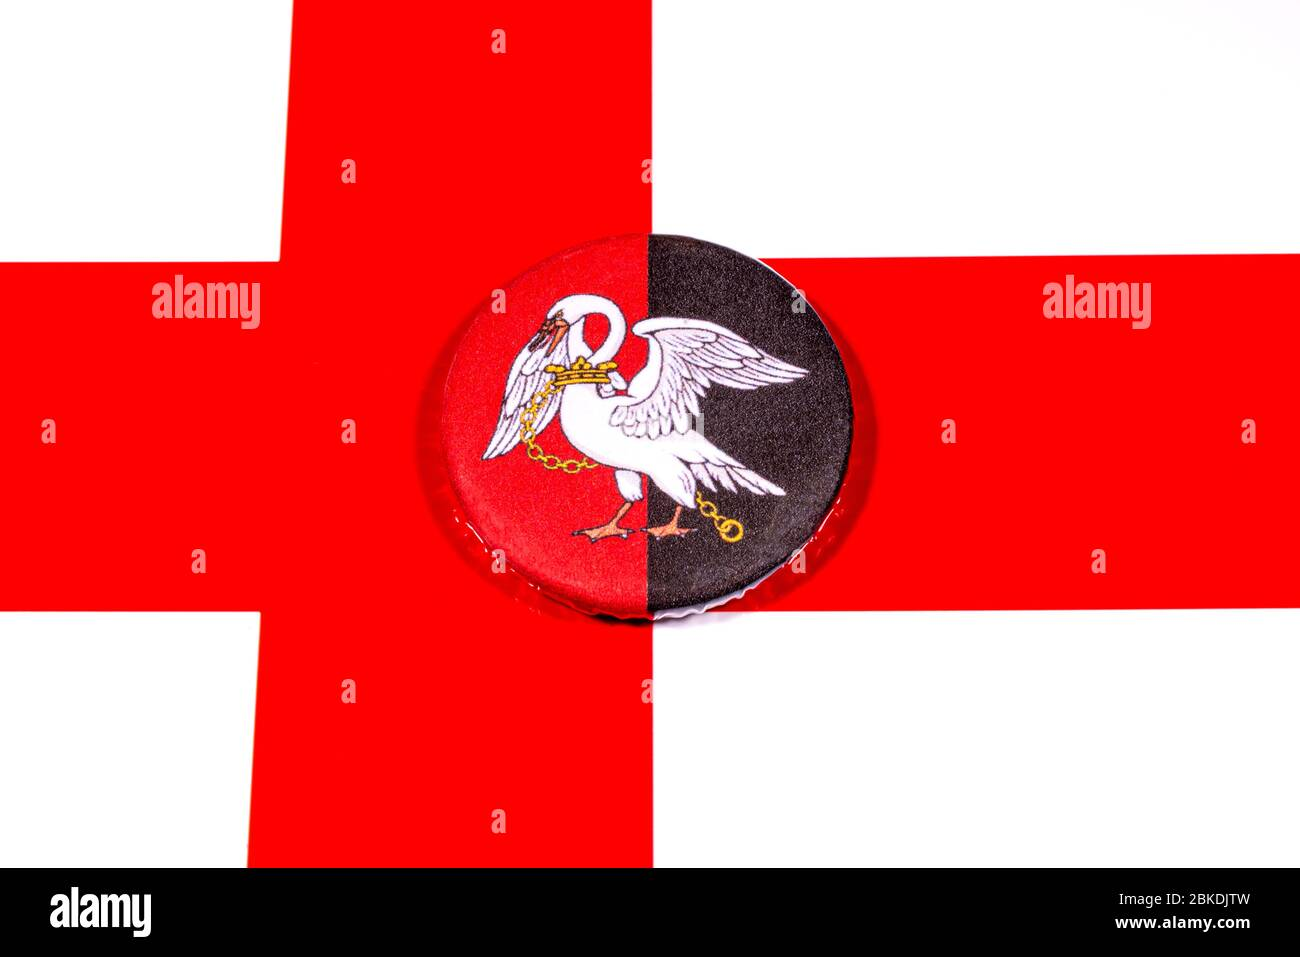 A badge portraying the flag of the English county of Buckinghamshire pictured over the England flag. Stock Photo